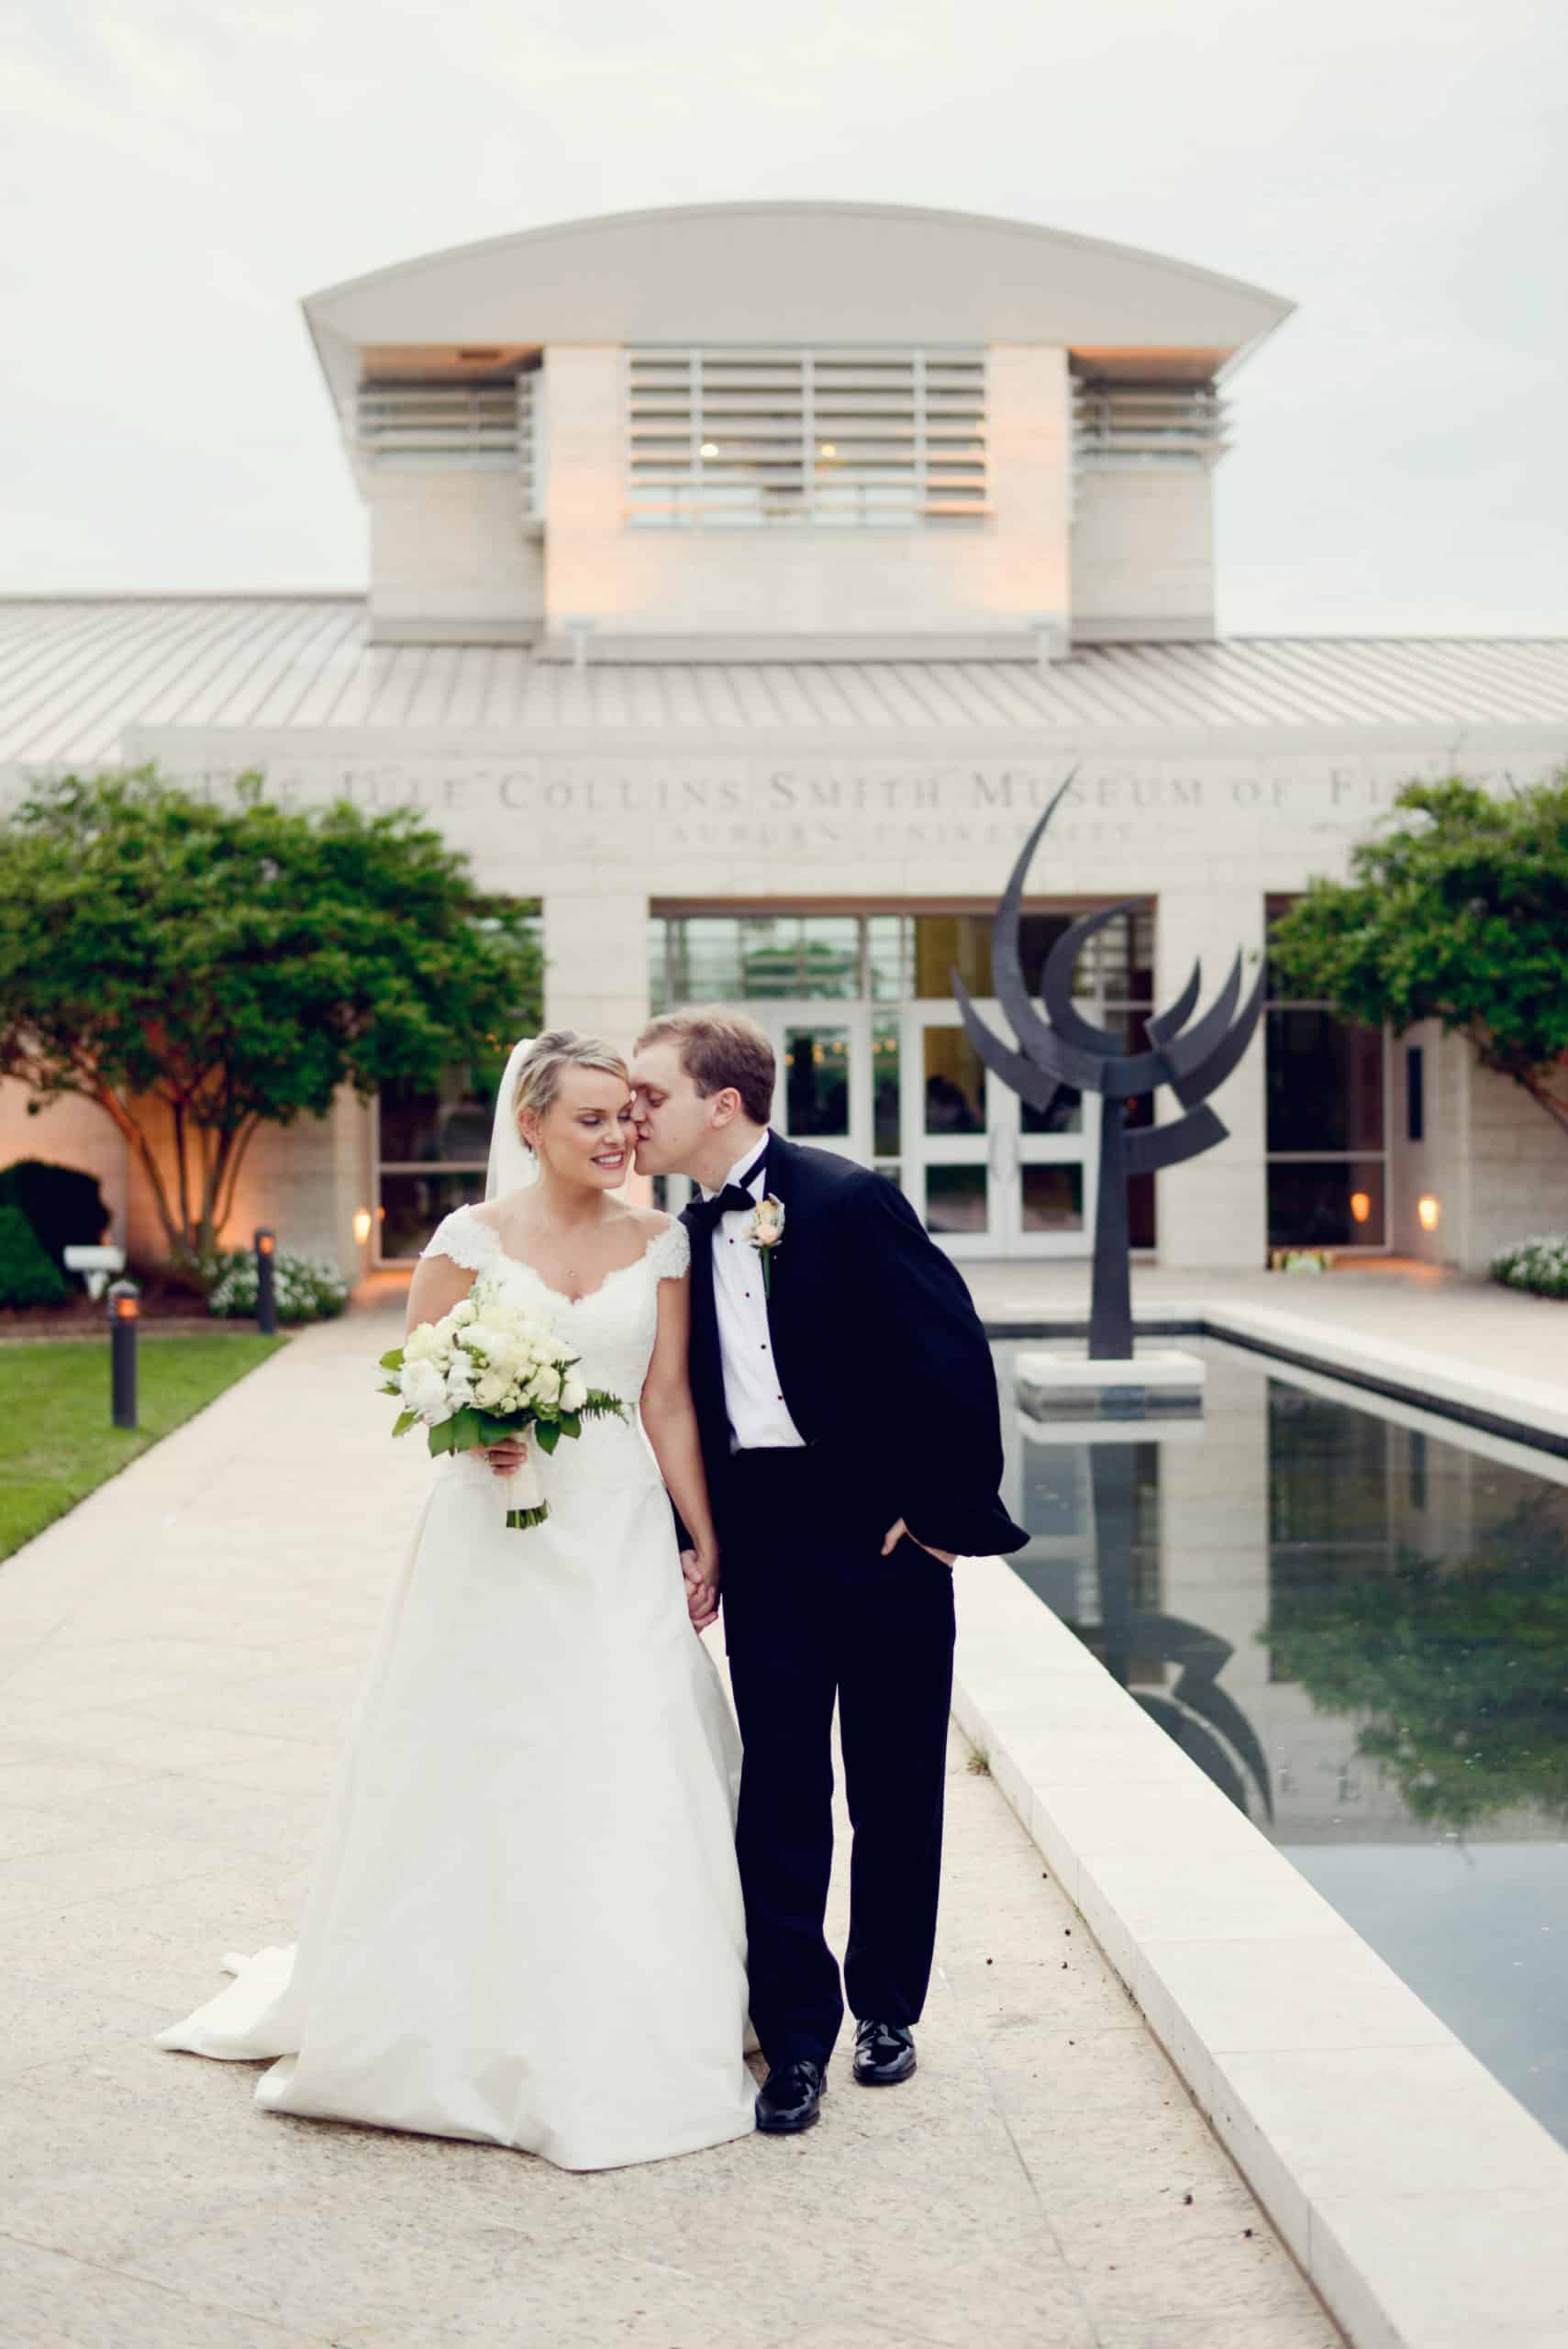 Jule Collins Smith Museum of Fine Art Wedding Venues in Alabama